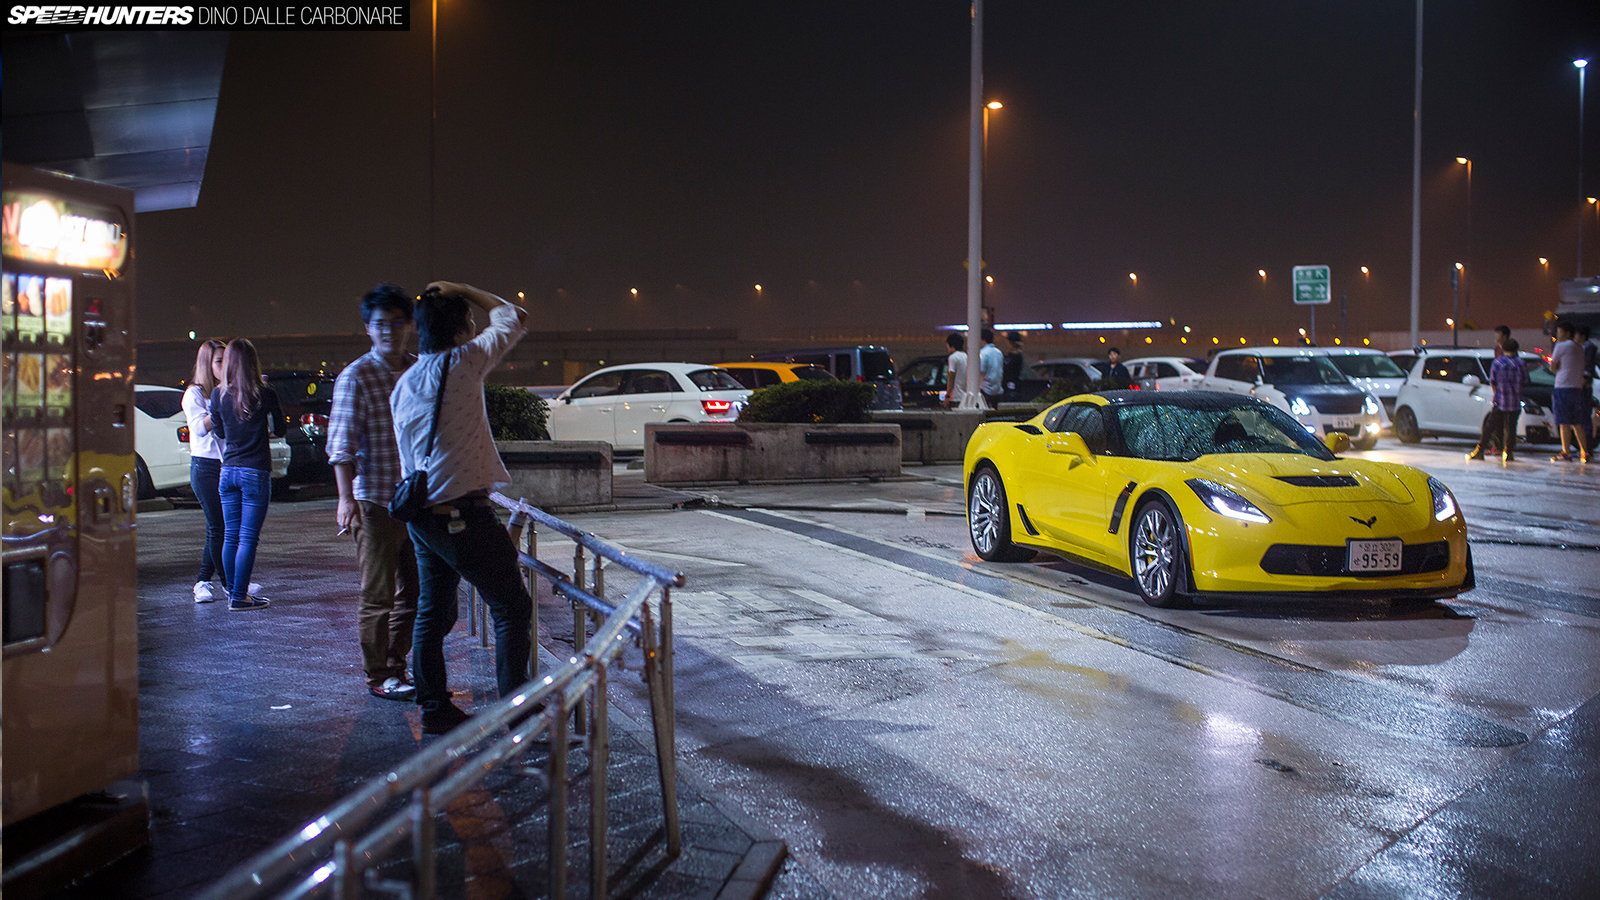 Z06 Corvette Has a Night Out in Tokyo